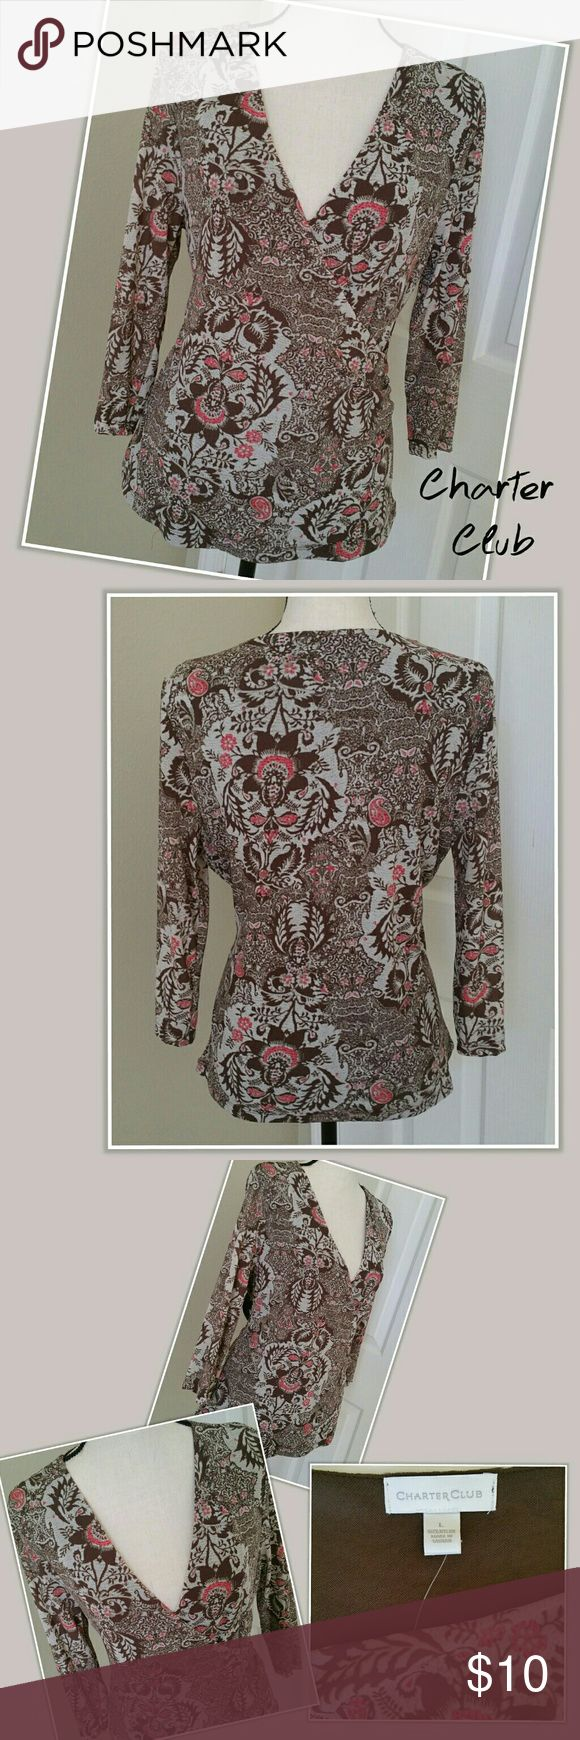 🌇 NWOT Charter Club Top 3/4 Sleeve Brown Gray L * NWOT Charter Club 3/4 sleeve, faux-wrap top. Brown, gray and coral print. V-neck and fully lined. * Size large * 100% nylon * New without tags (NWOT), never worn. No damage to note. Charter Club Tops